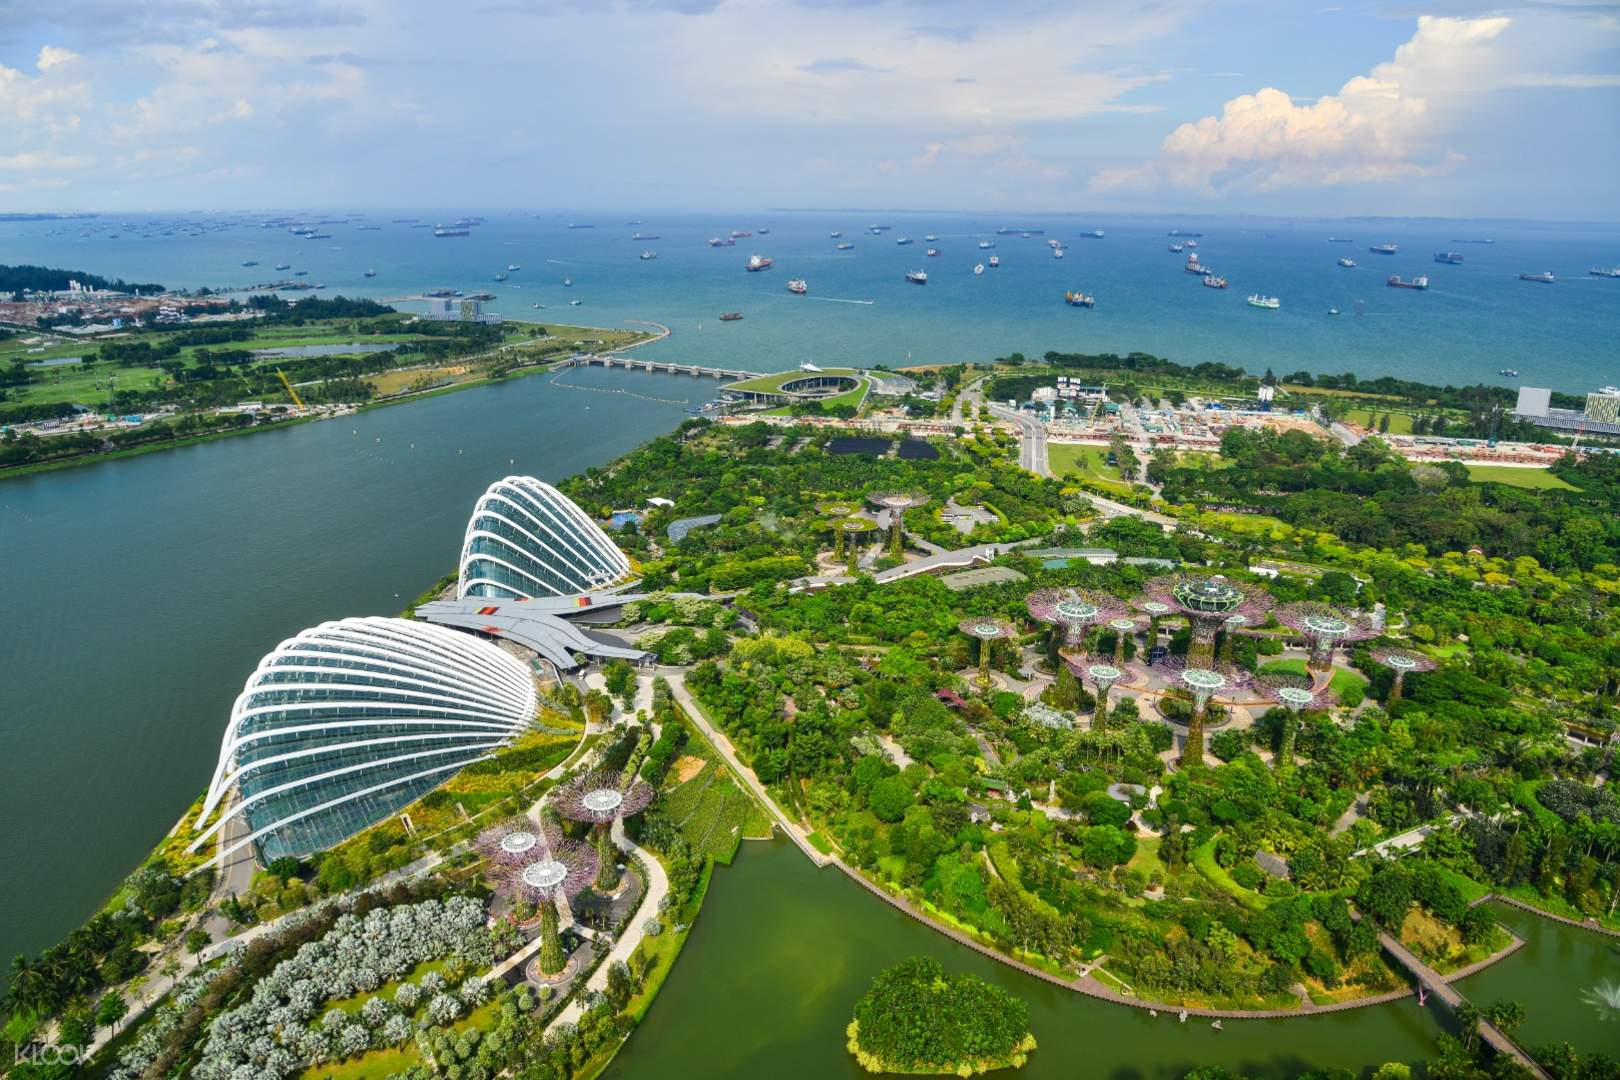 Singapore Gardens by the Bay Tickets (Cloud Forest & Flower Dome) - Klook Philippines